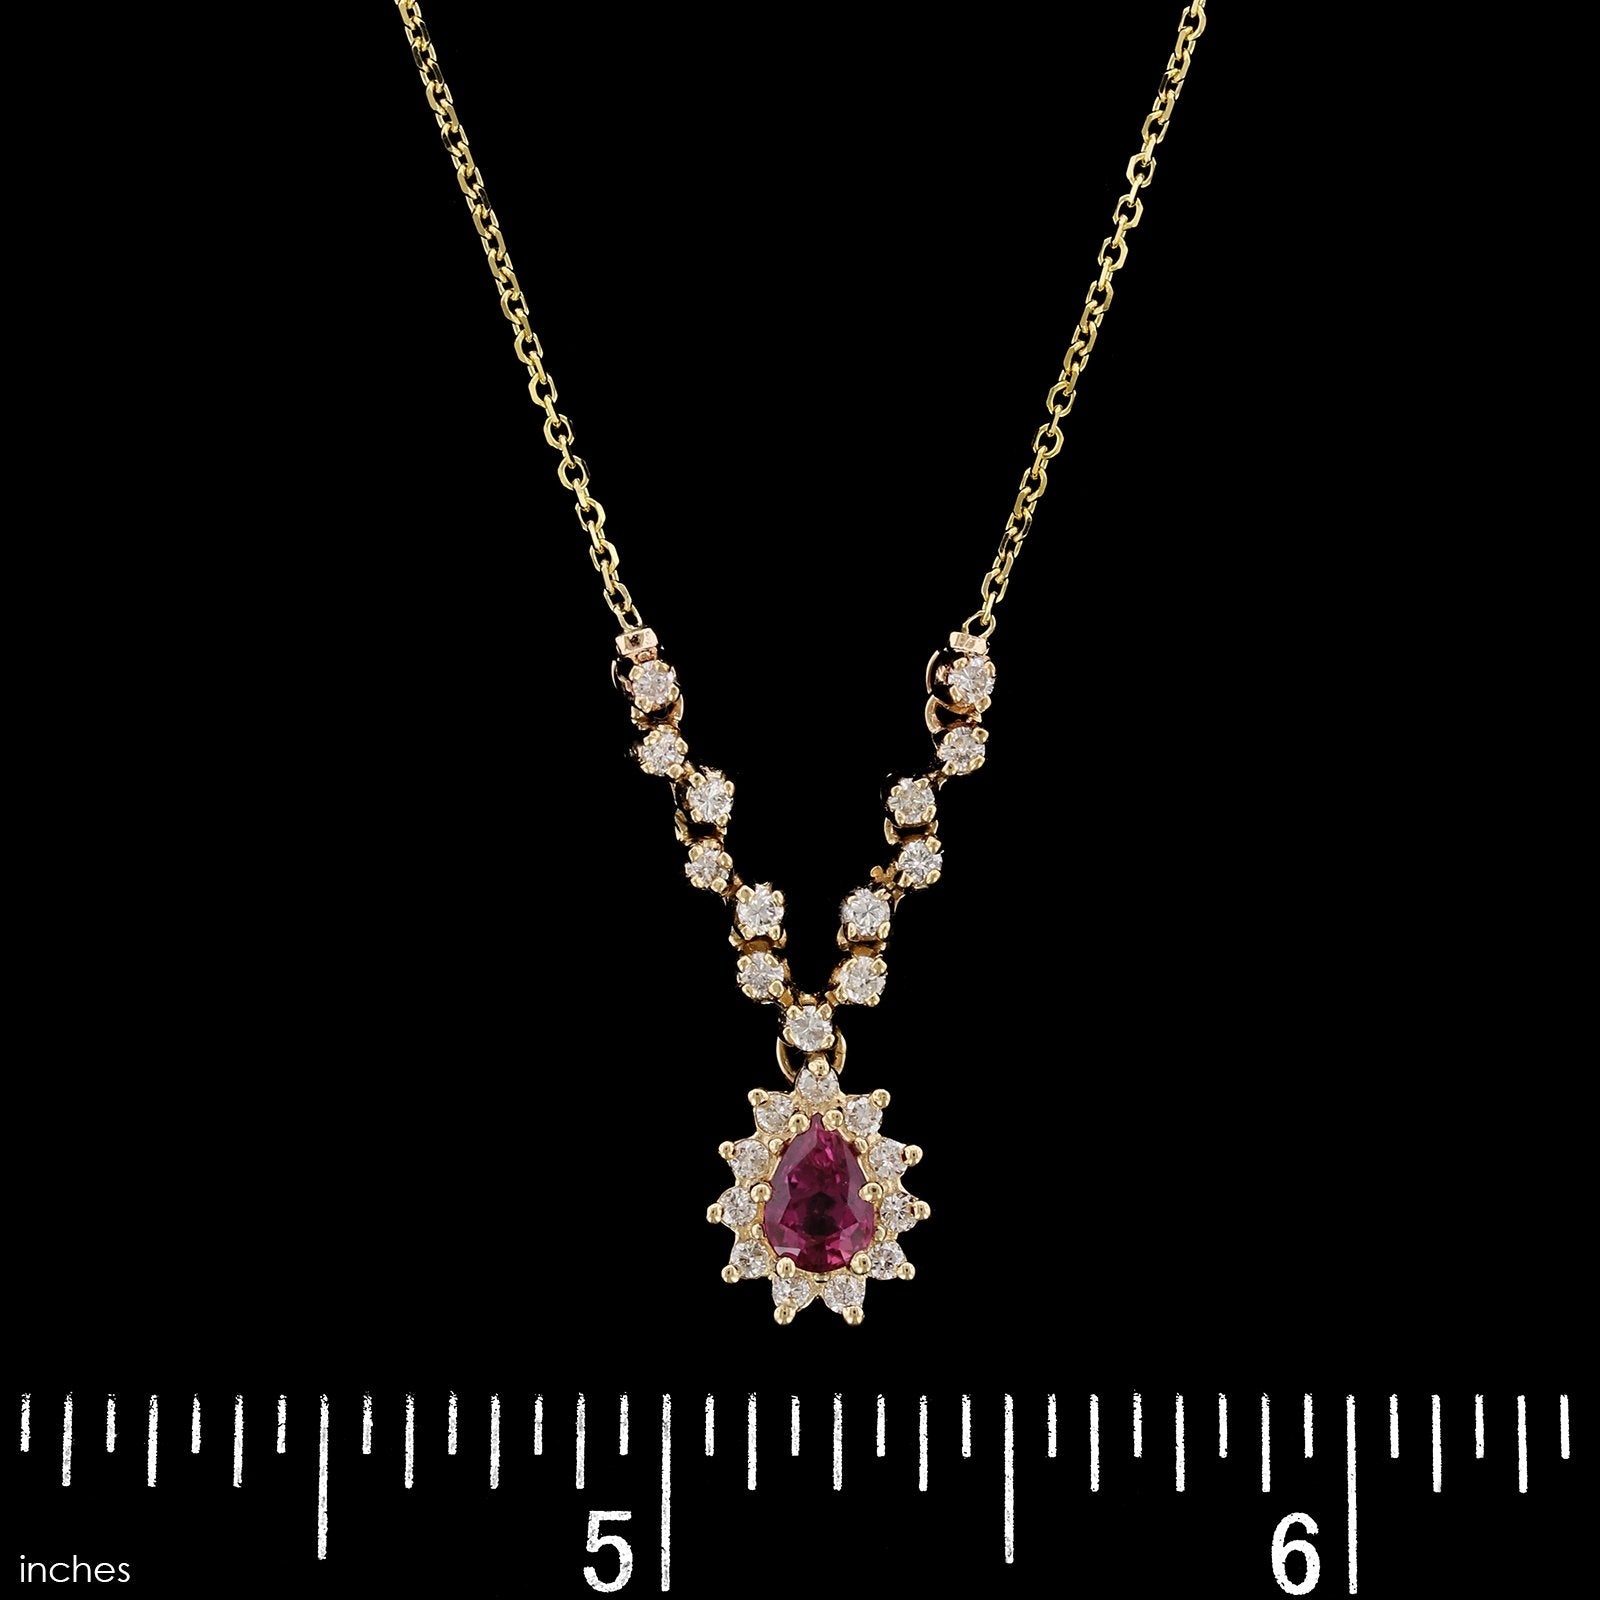 14K Yellow Gold Estate Ruby and Diamond Pendant